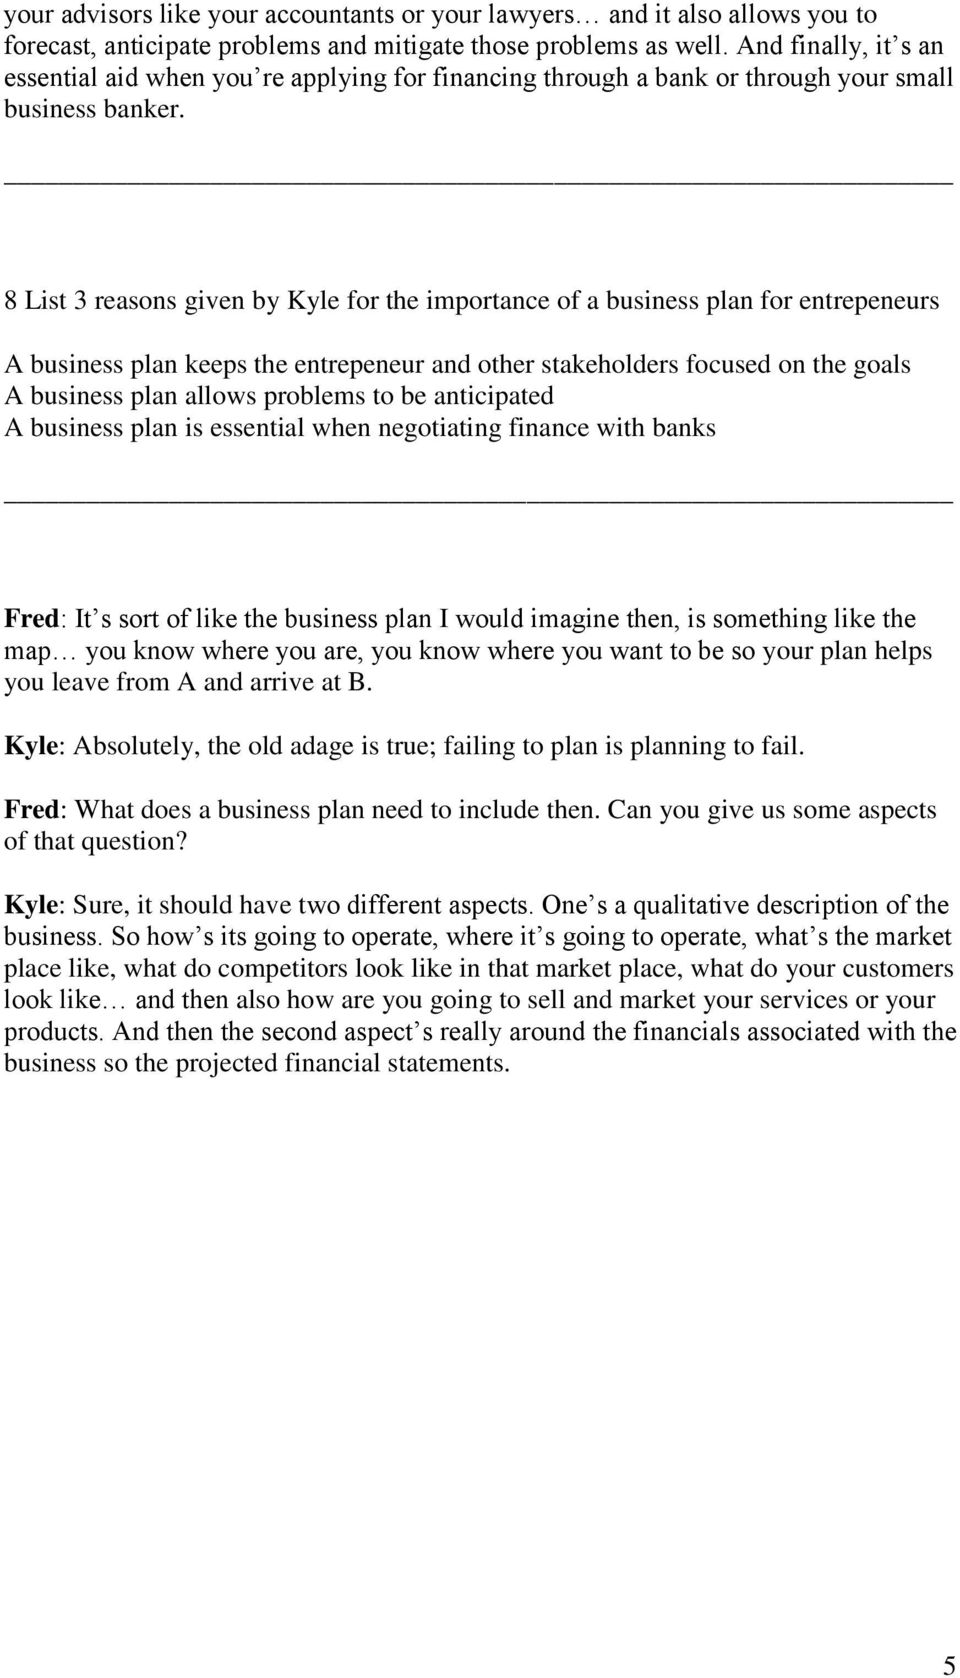 8 List 3 reasons given by Kyle for the importance of a business plan for entrepeneurs A business plan keeps the entrepeneur and other stakeholders focused on the goals A business plan allows problems